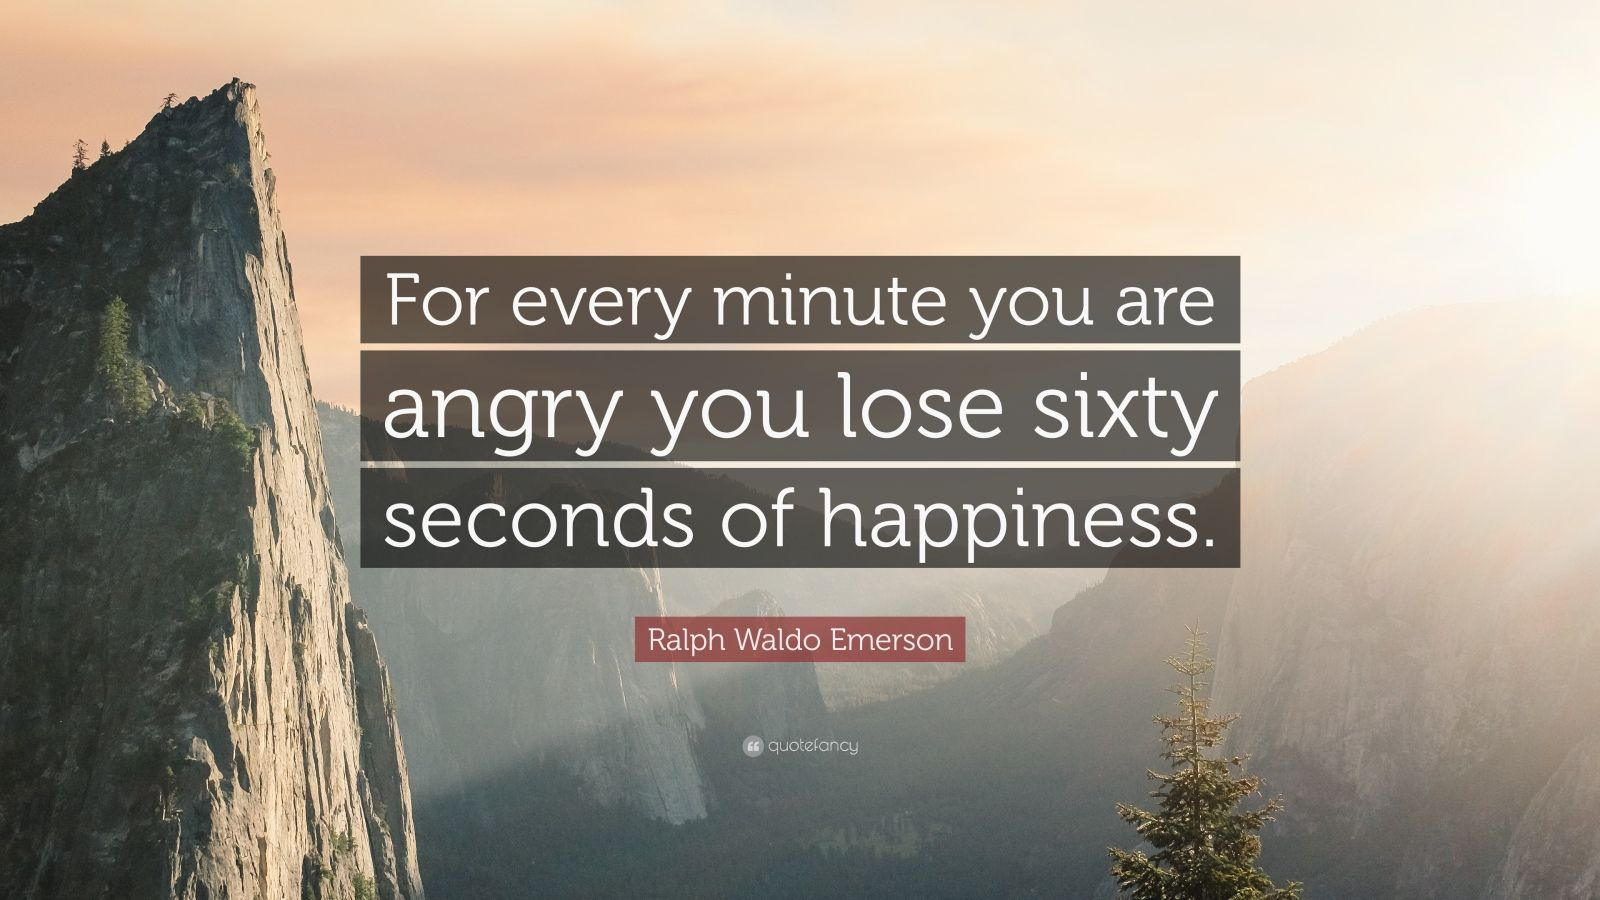 Happiness Quotes: U201cFor Every Minute You Are Angry You Lose Sixty Seconds Of  Happiness